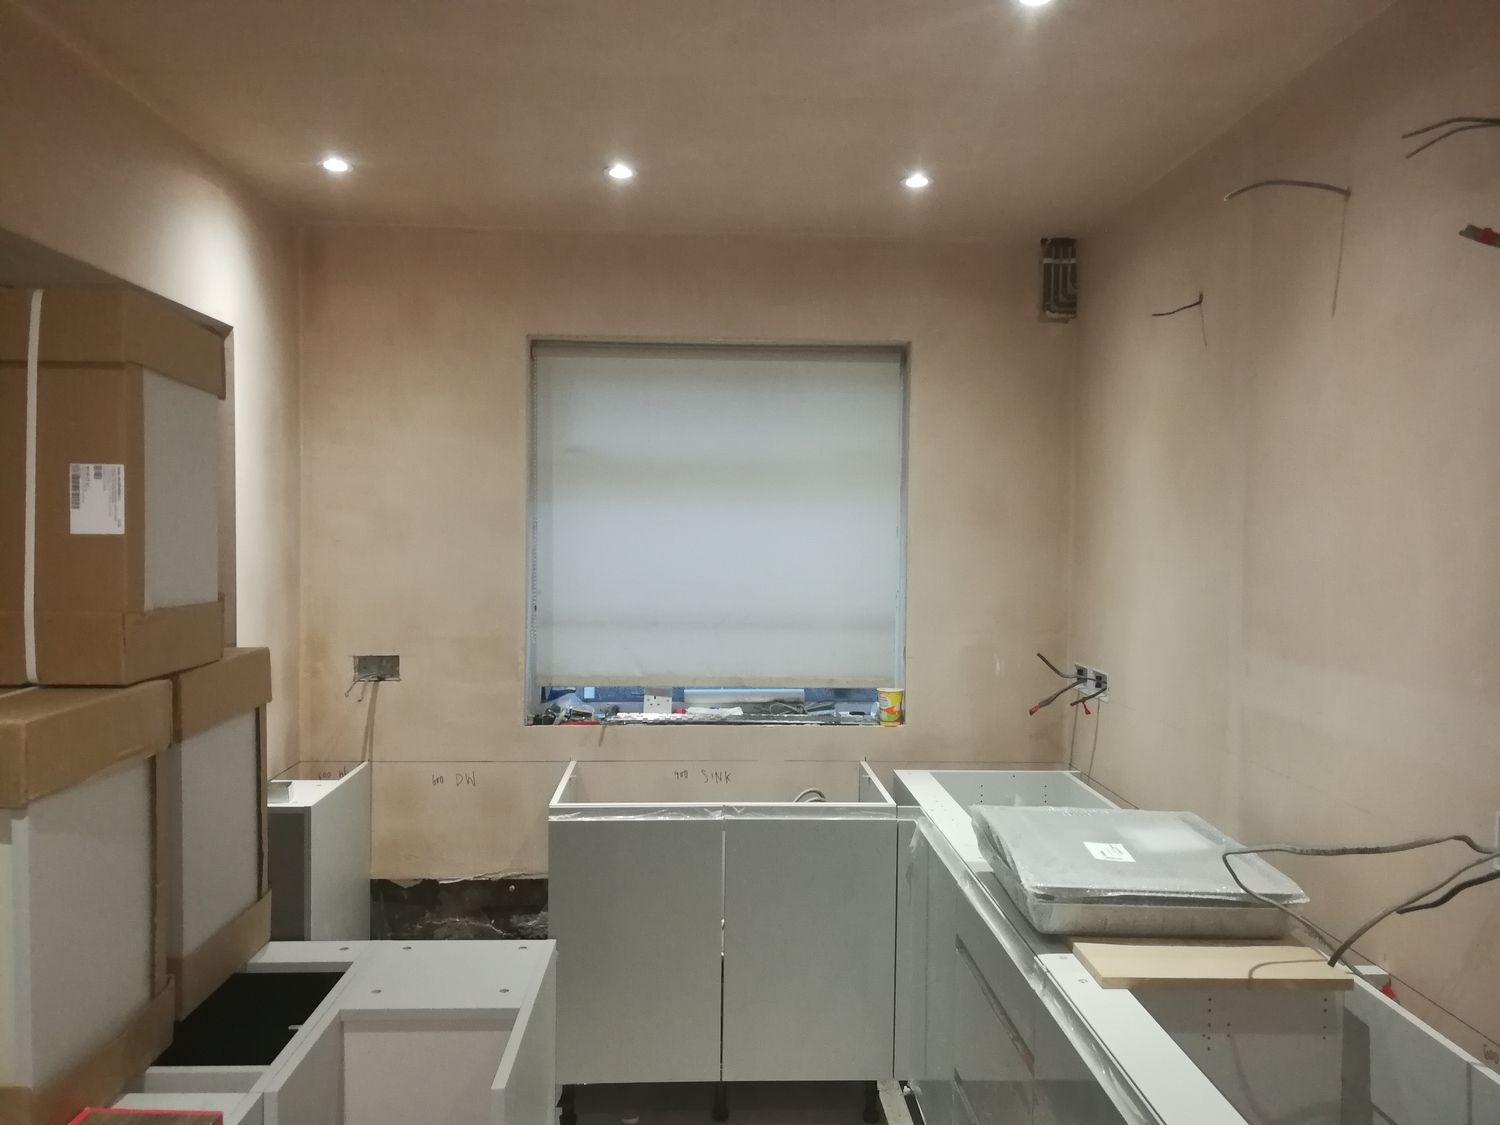 A photo of the kitchen area with the old window, bare plaster walls and no window dressing.